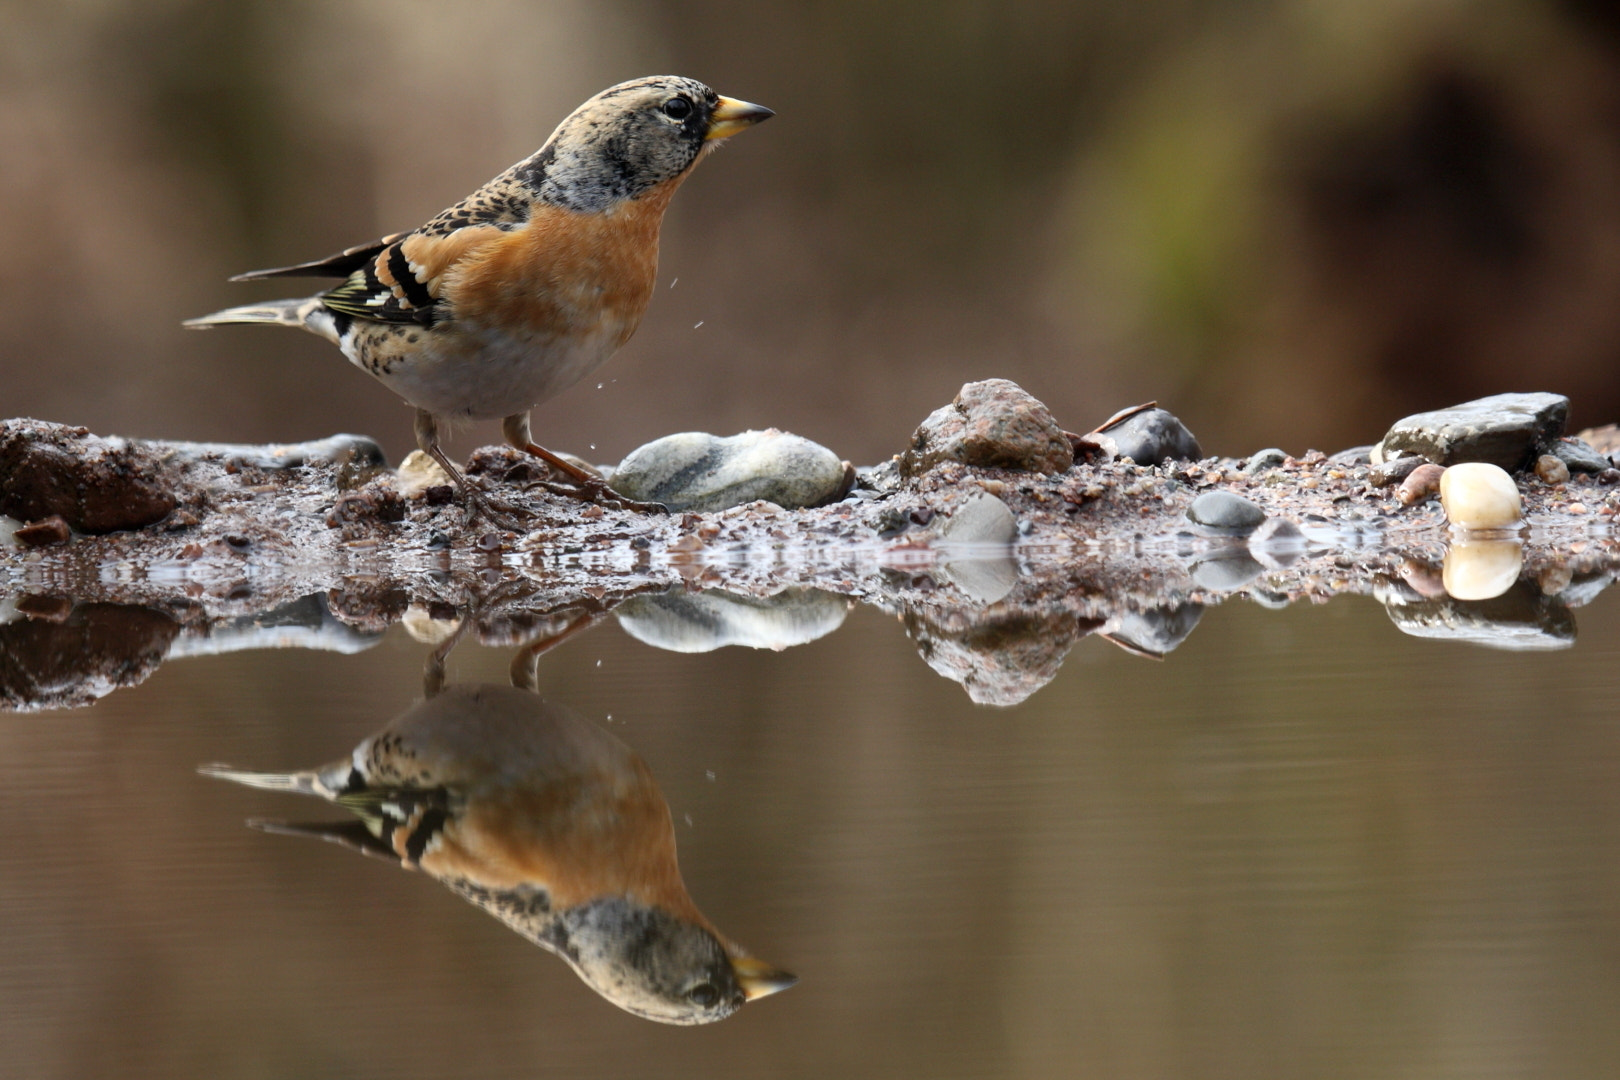 Photograph pinson du nord reflet by Thomas Selig on 500px